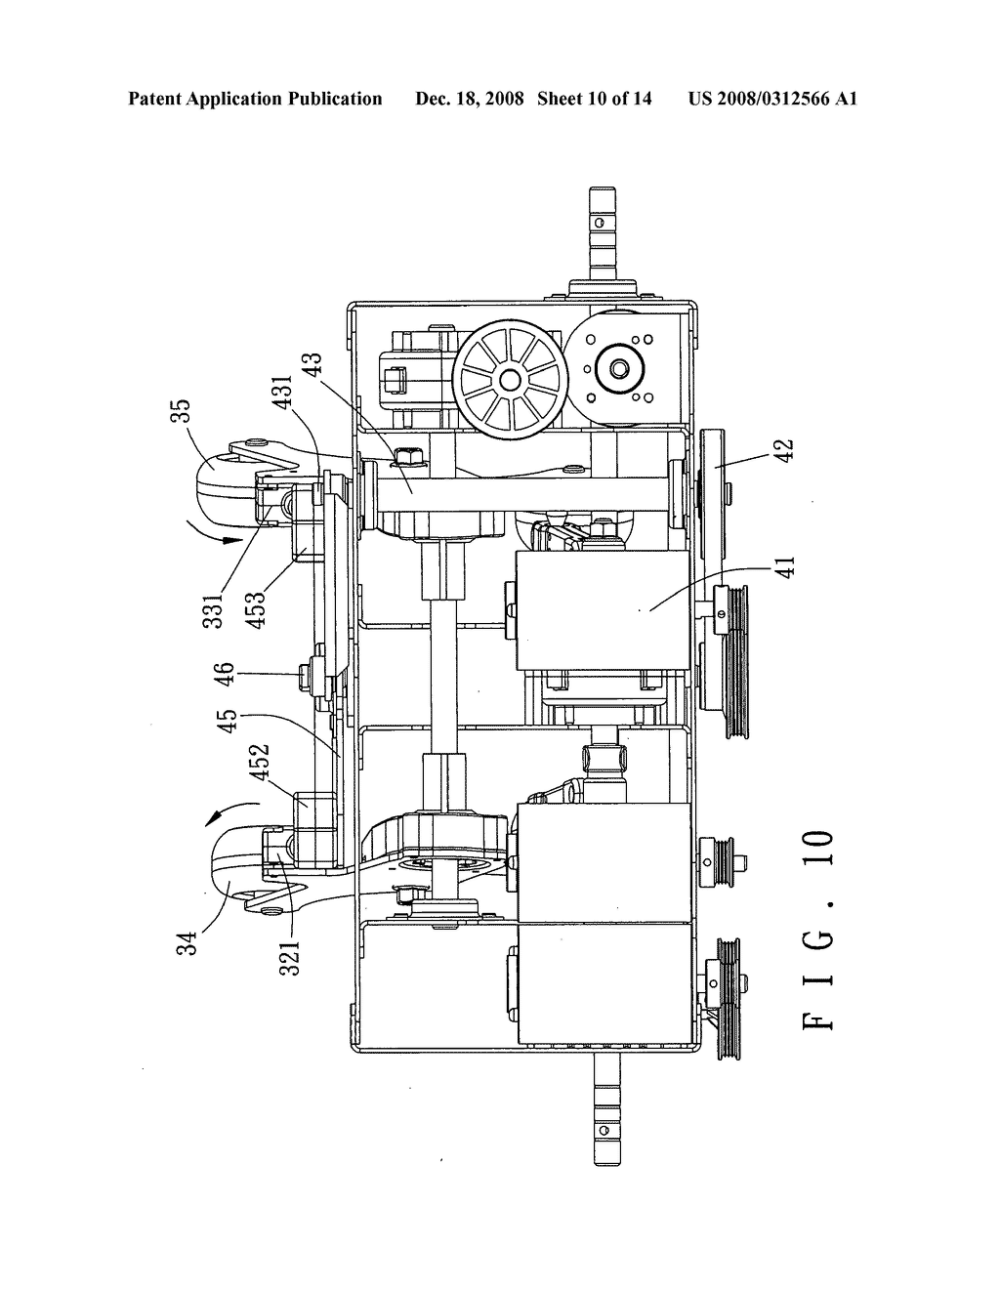 medium resolution of tapping mechanism for use in a massage device of a massage machine diagram schematic and image 11